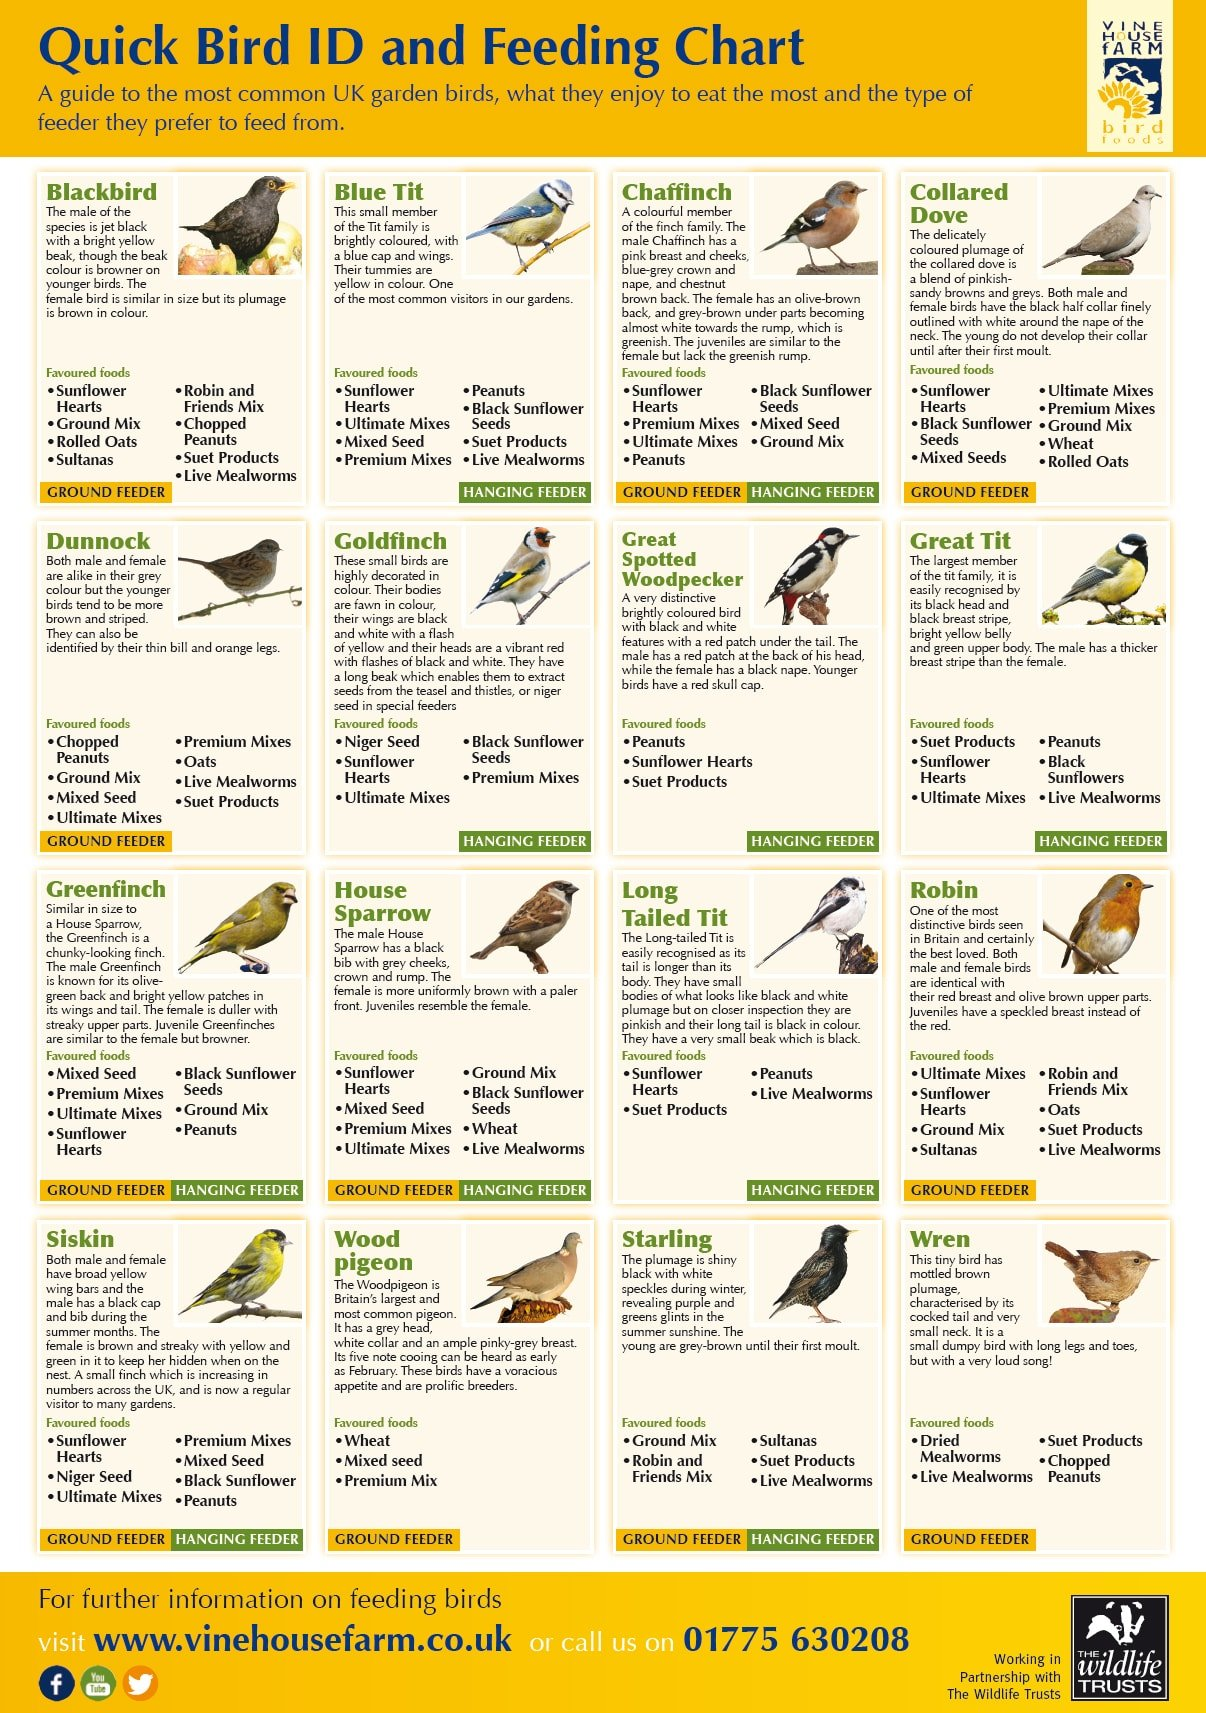 A Quick Guide to Bird Feeding (Infographic)